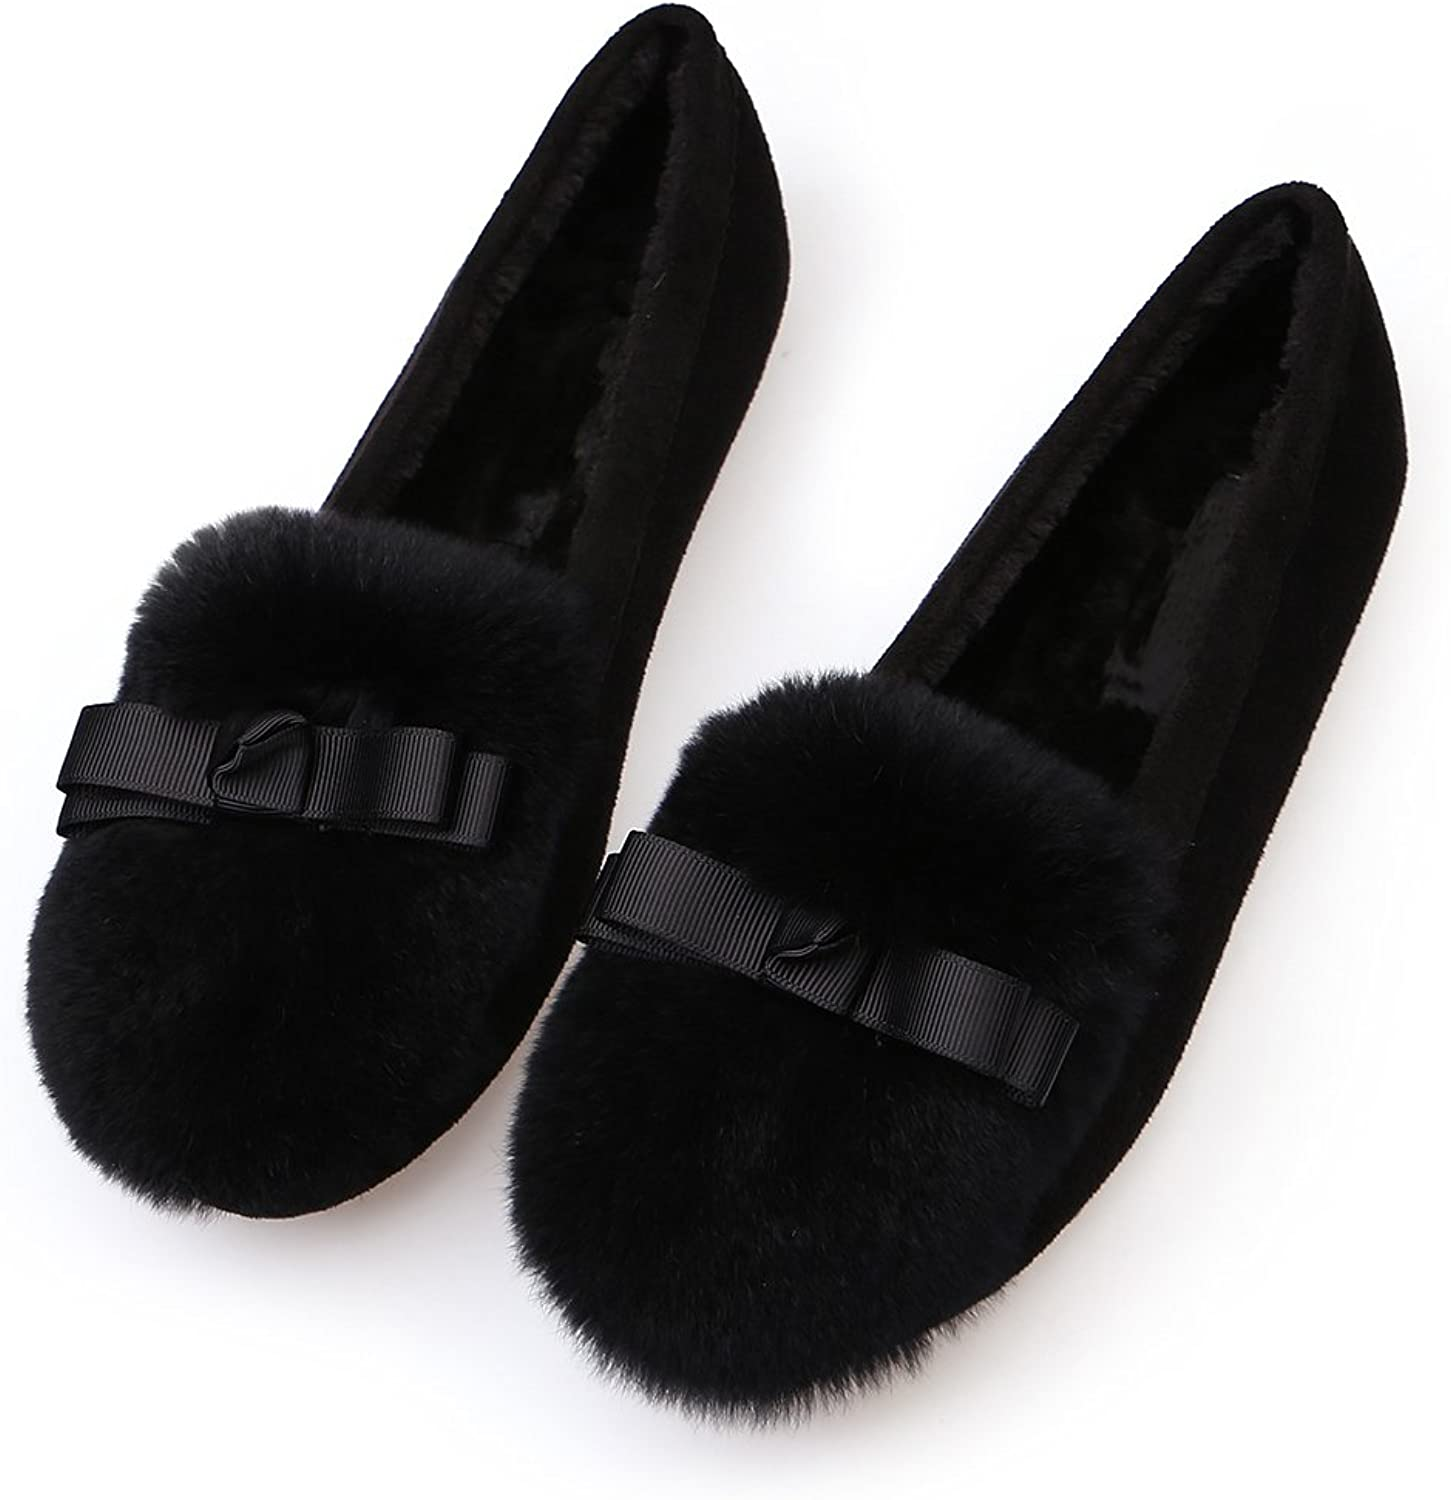 QZUnique Women Soft Sole Moccasin Slippers Round Toe Bowknot Decor Flat Loafers shoes